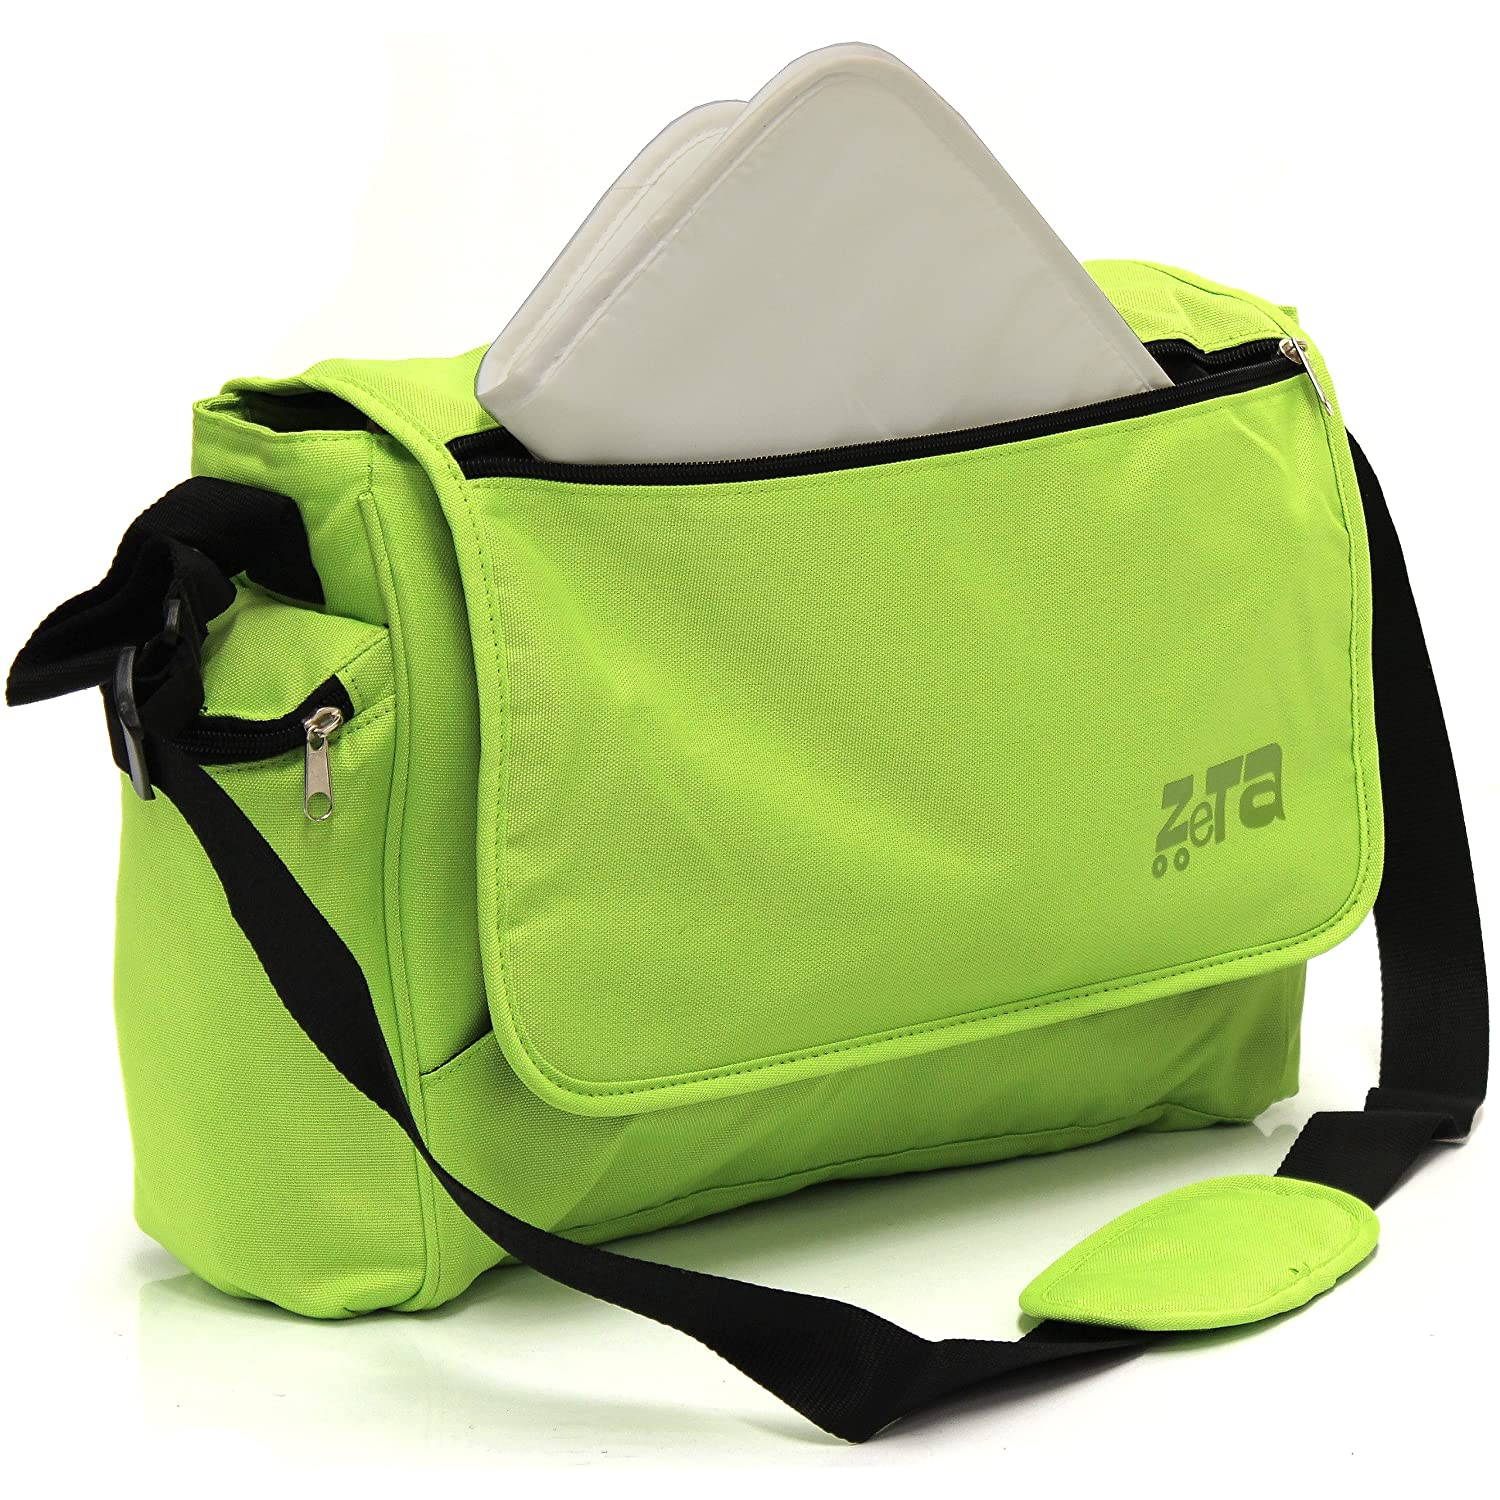 Zeta Luxury Changing Bag Complete with Changing Bag (Large, Lime) ZE307